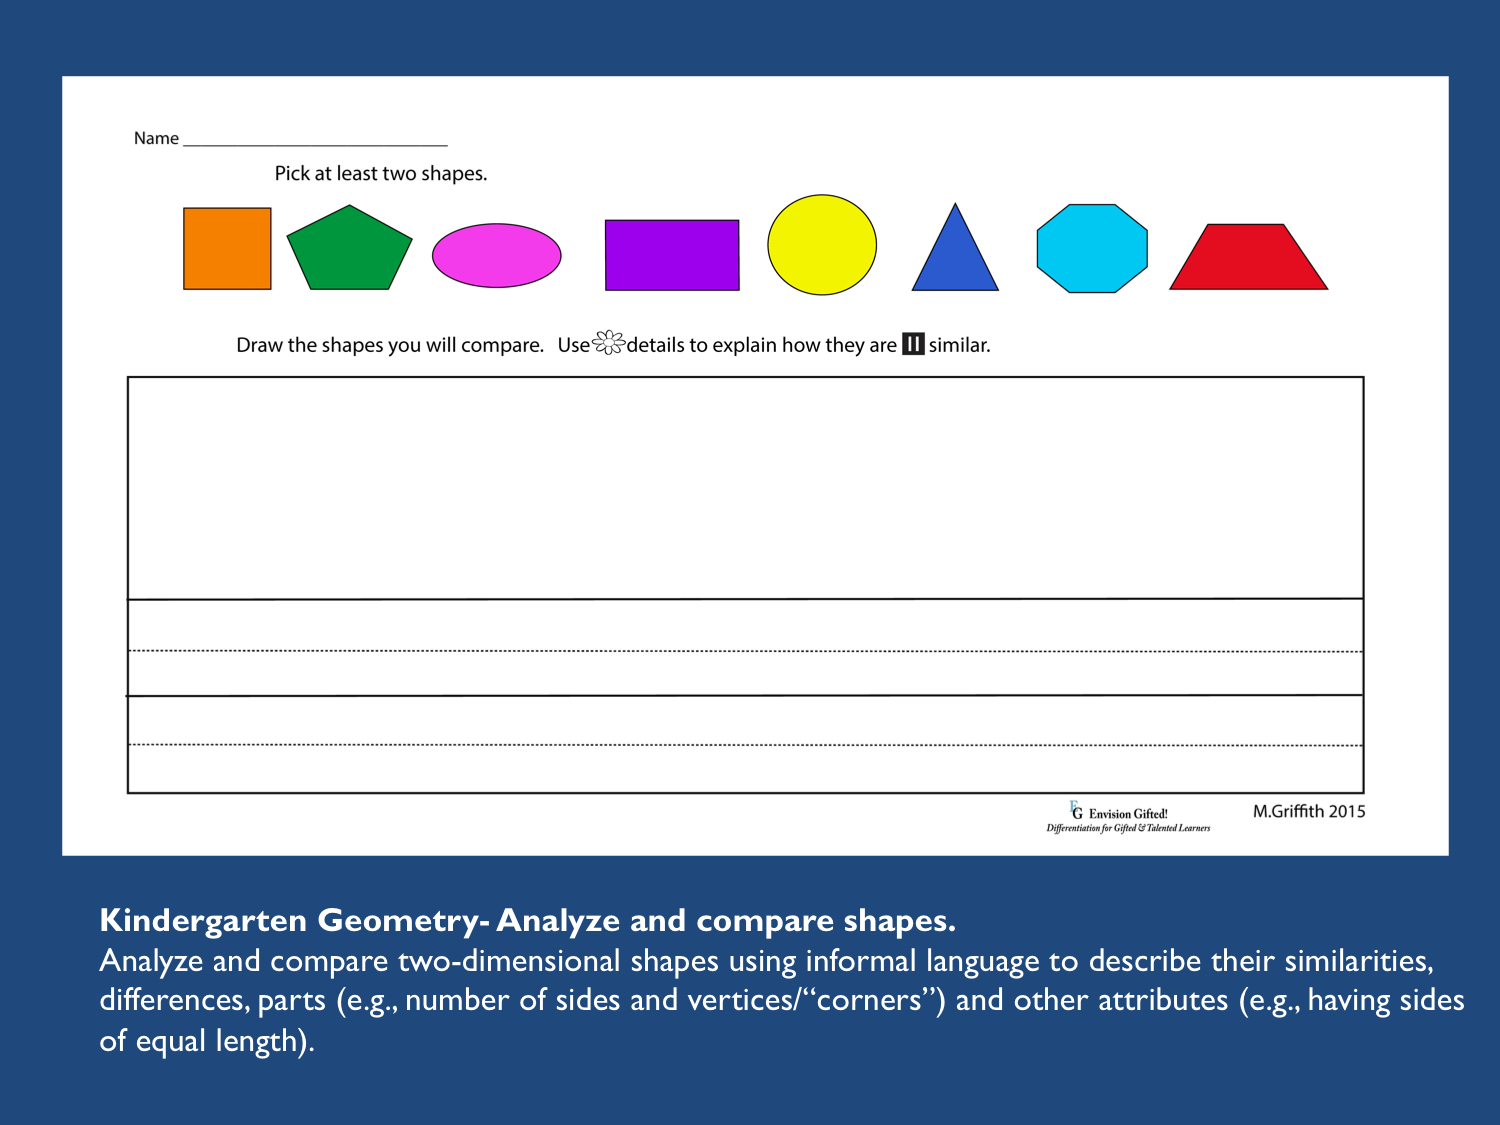 Image shows Primary Differentiated Shapes